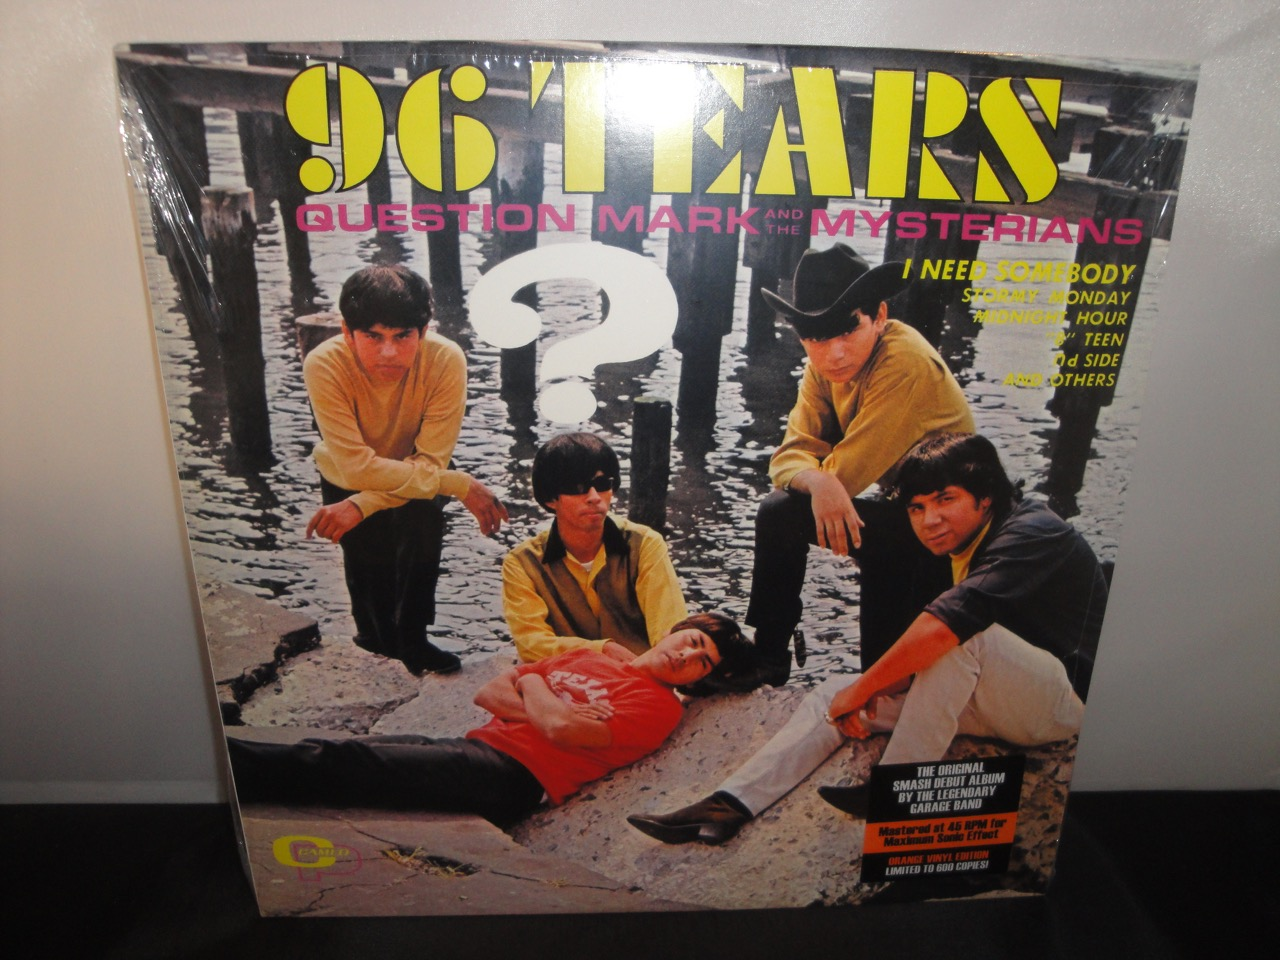 Question Mark & The Mysterians - 96 Tears - 2017 Ltd Ed, 45 RPM, Orange Colored Vinyl